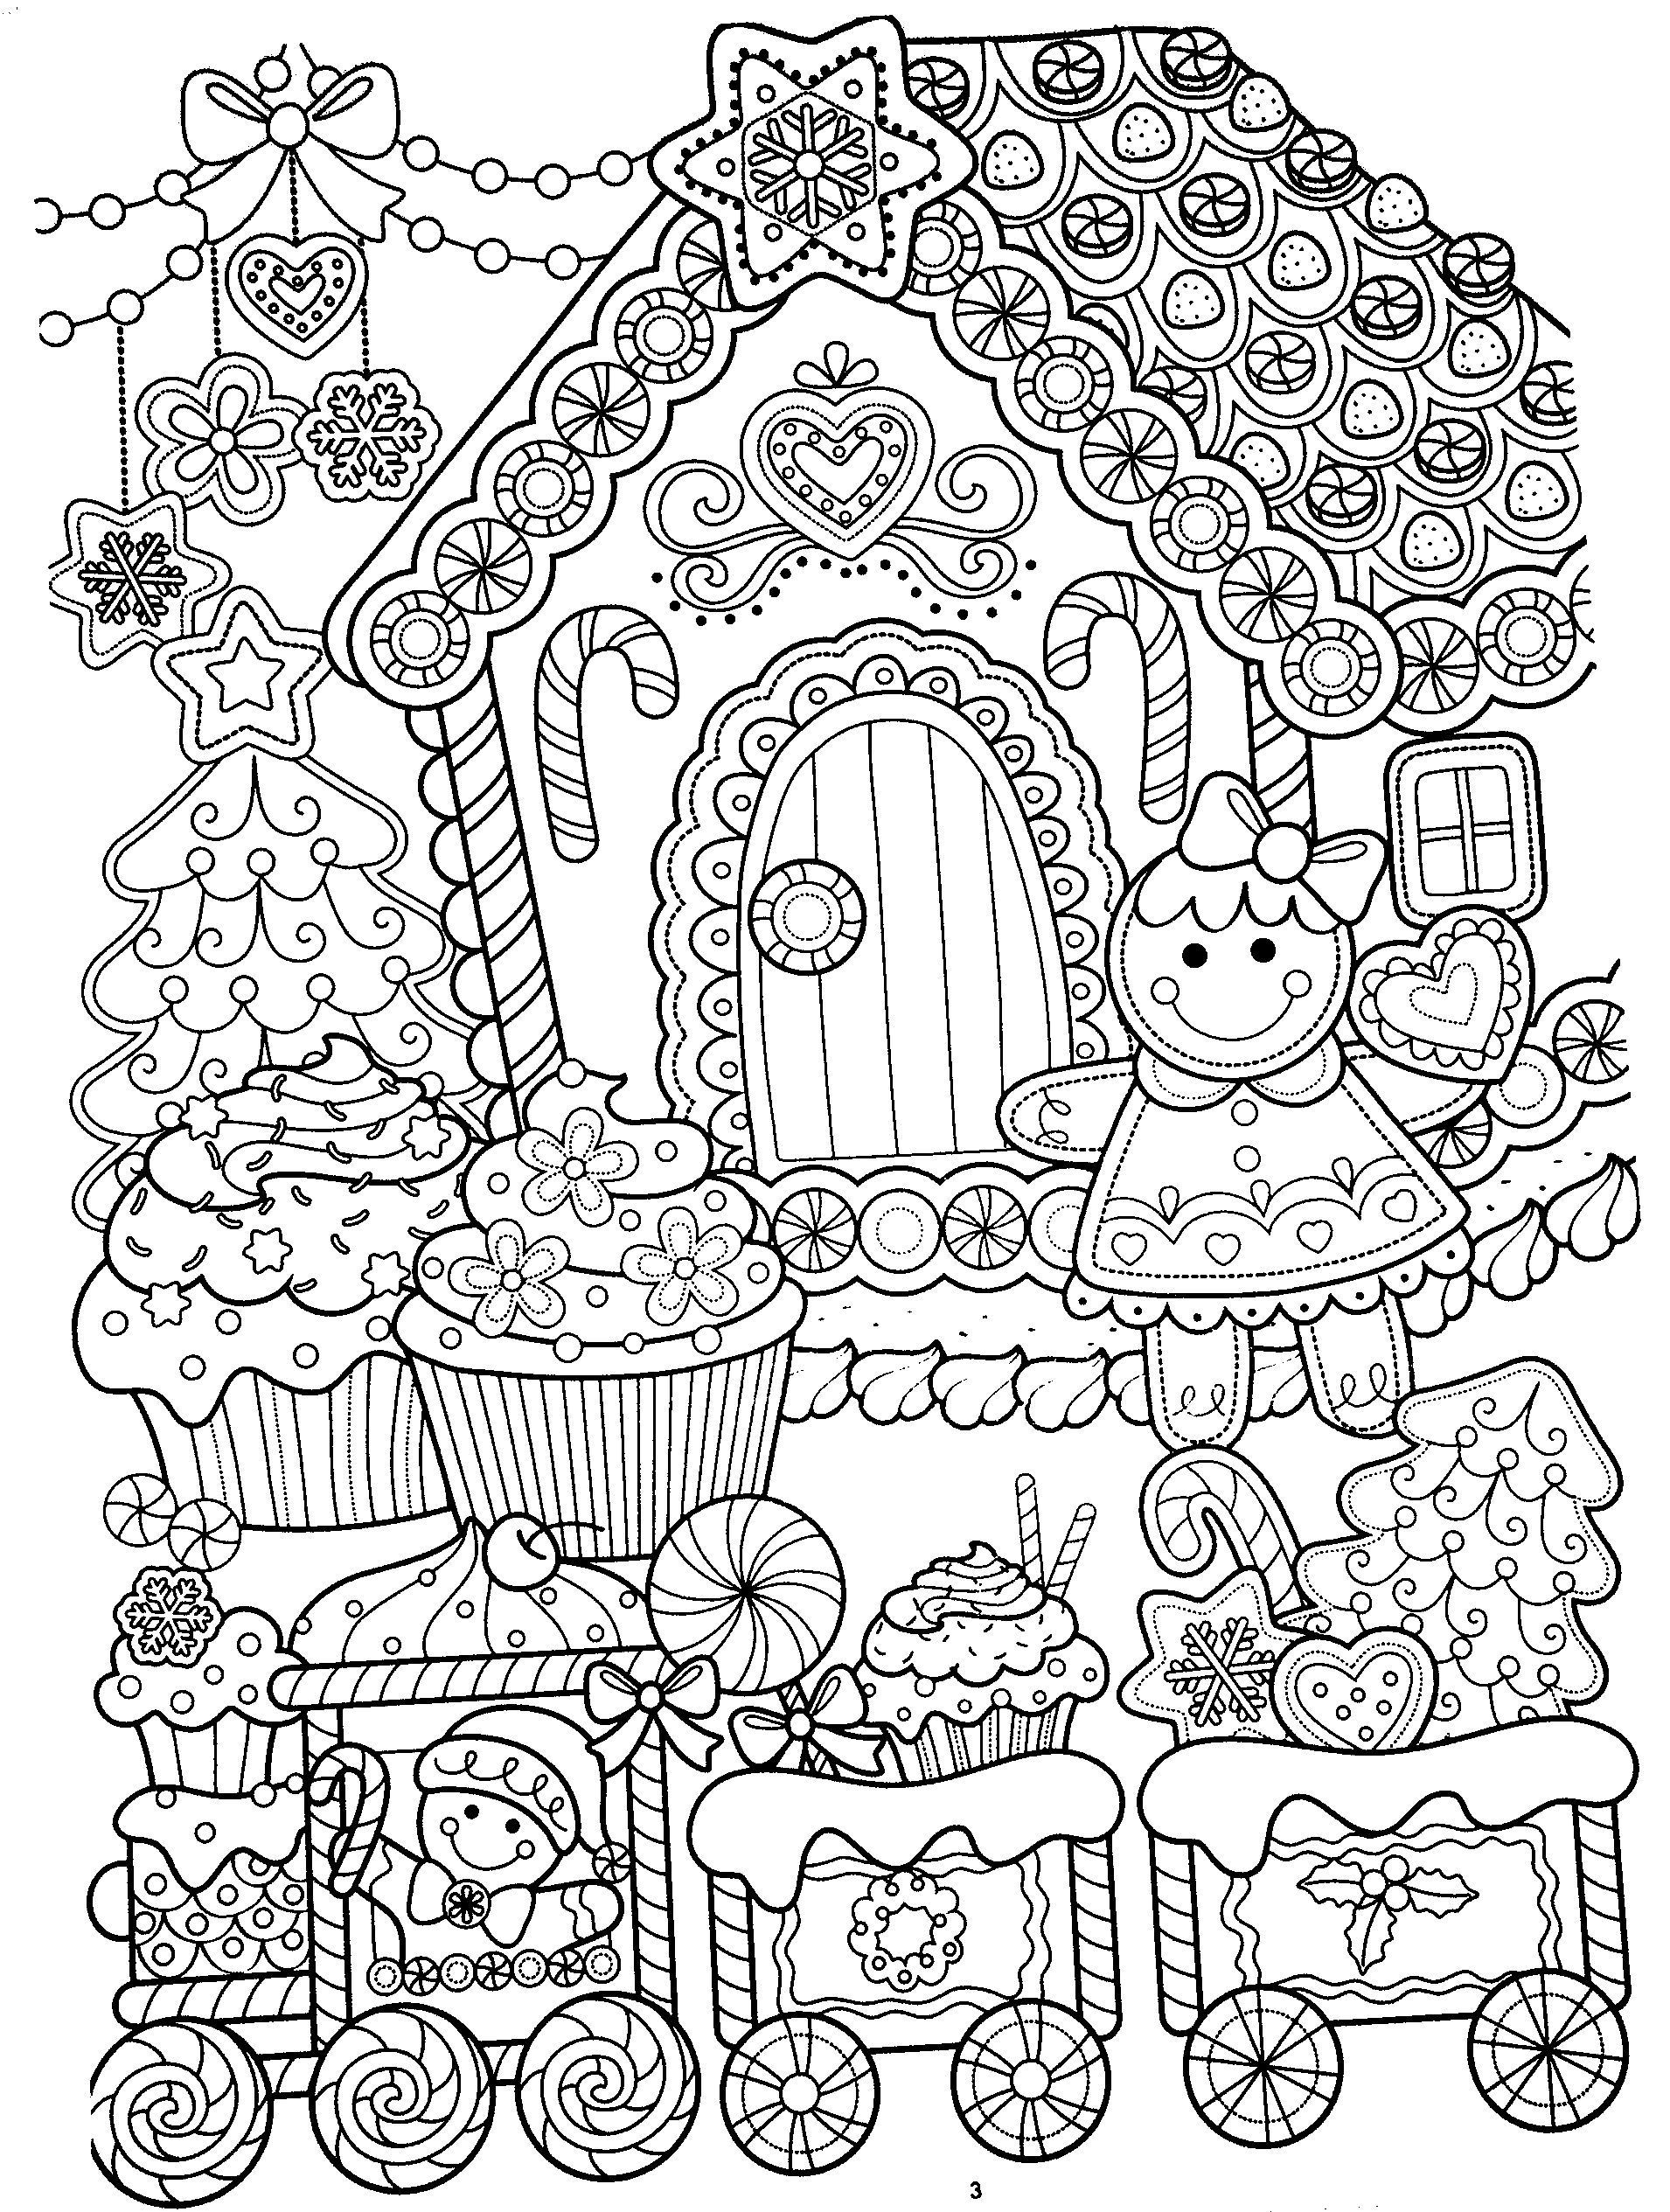 New Year coloring pages, Christmas coloring pages #adultcoloringpages New Year coloring pages, Christmas coloring pages #coloringsheets